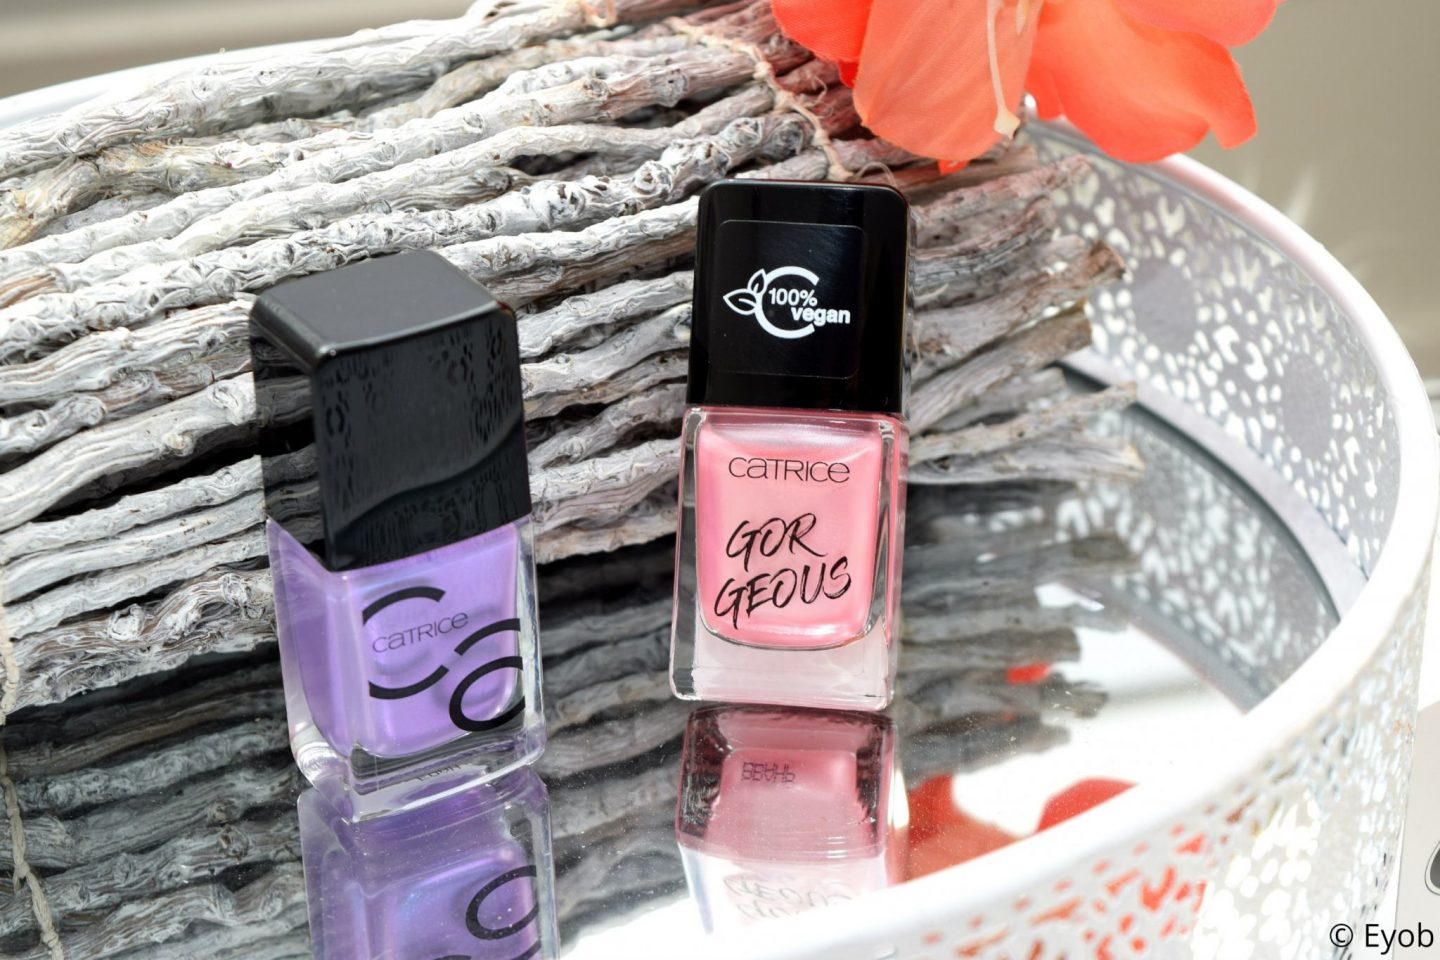 Catrice nagellakjes – yes or no